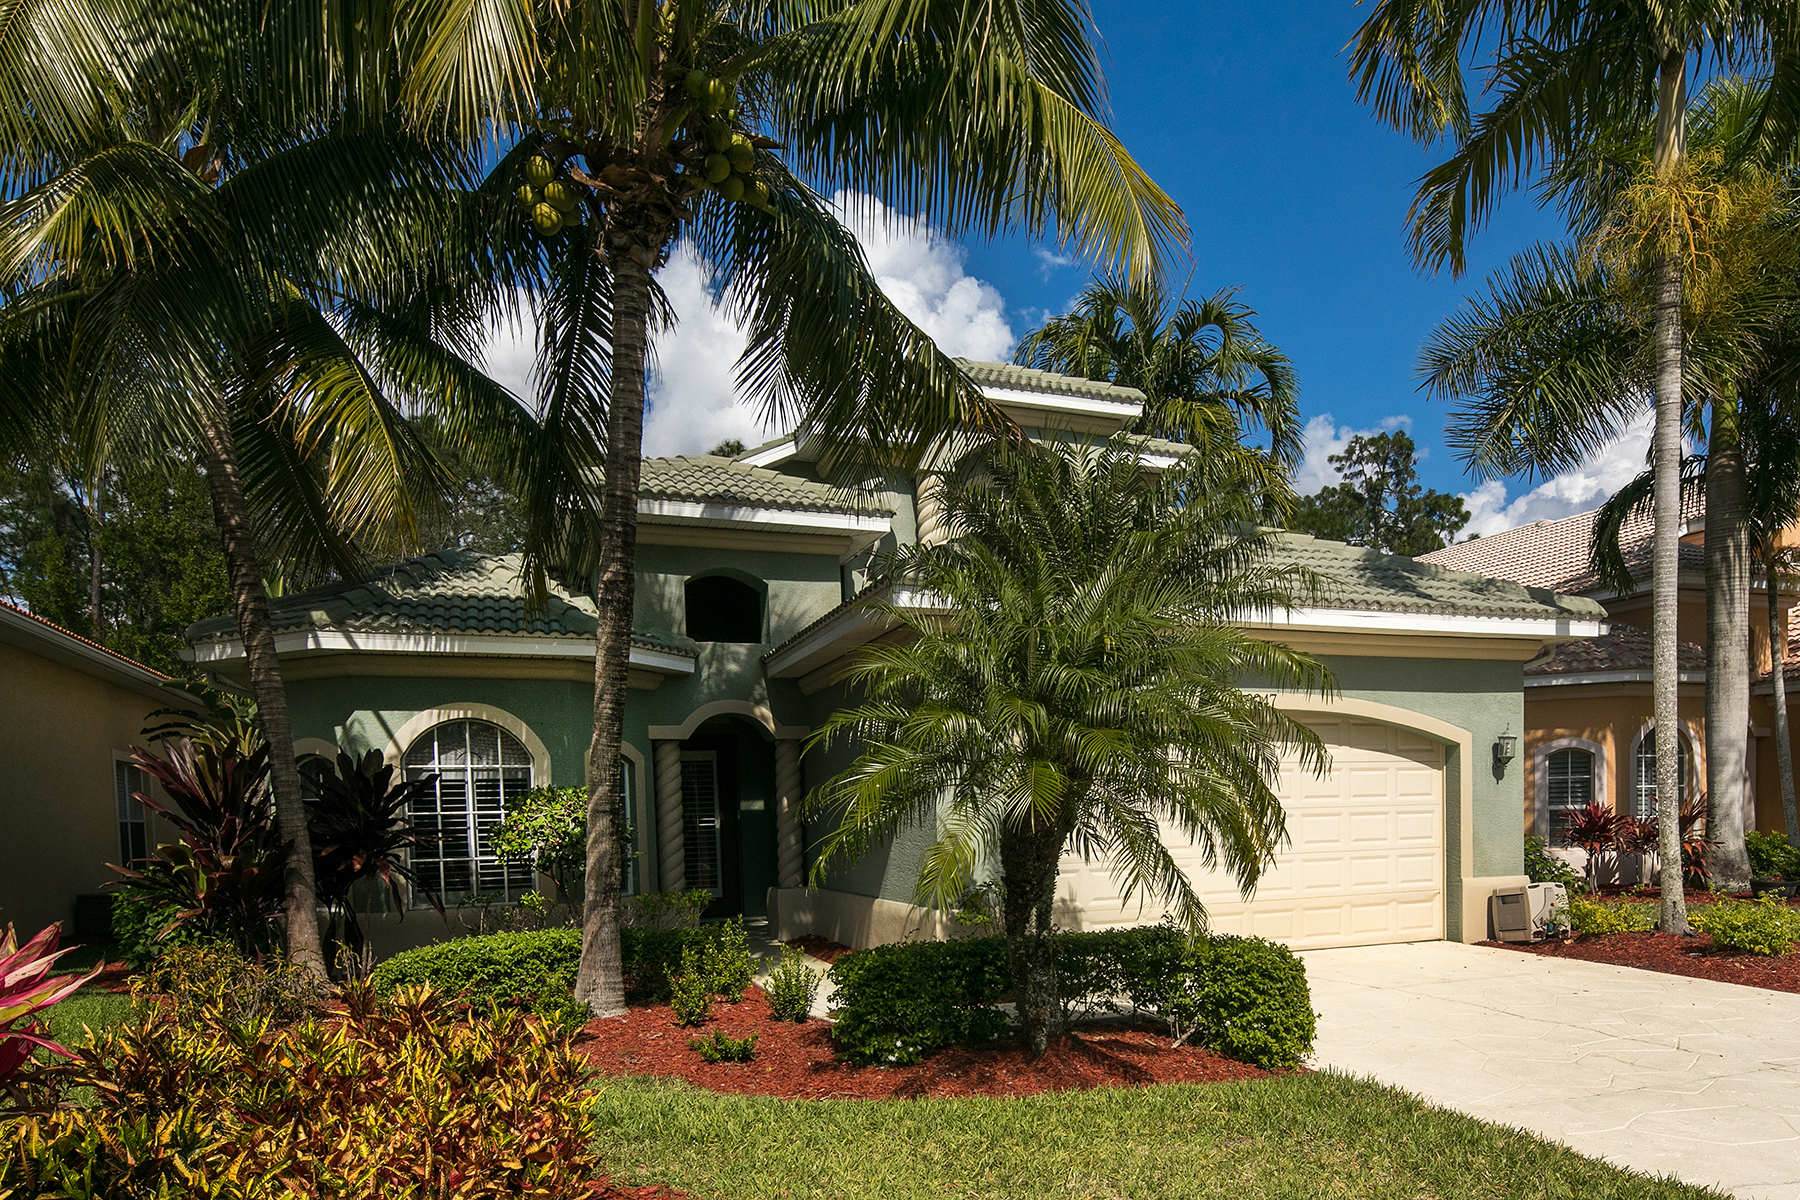 Casa Unifamiliar por un Venta en WILSHIRE LAKES 6047 Shallows Way Naples, Florida, 34109 Estados Unidos